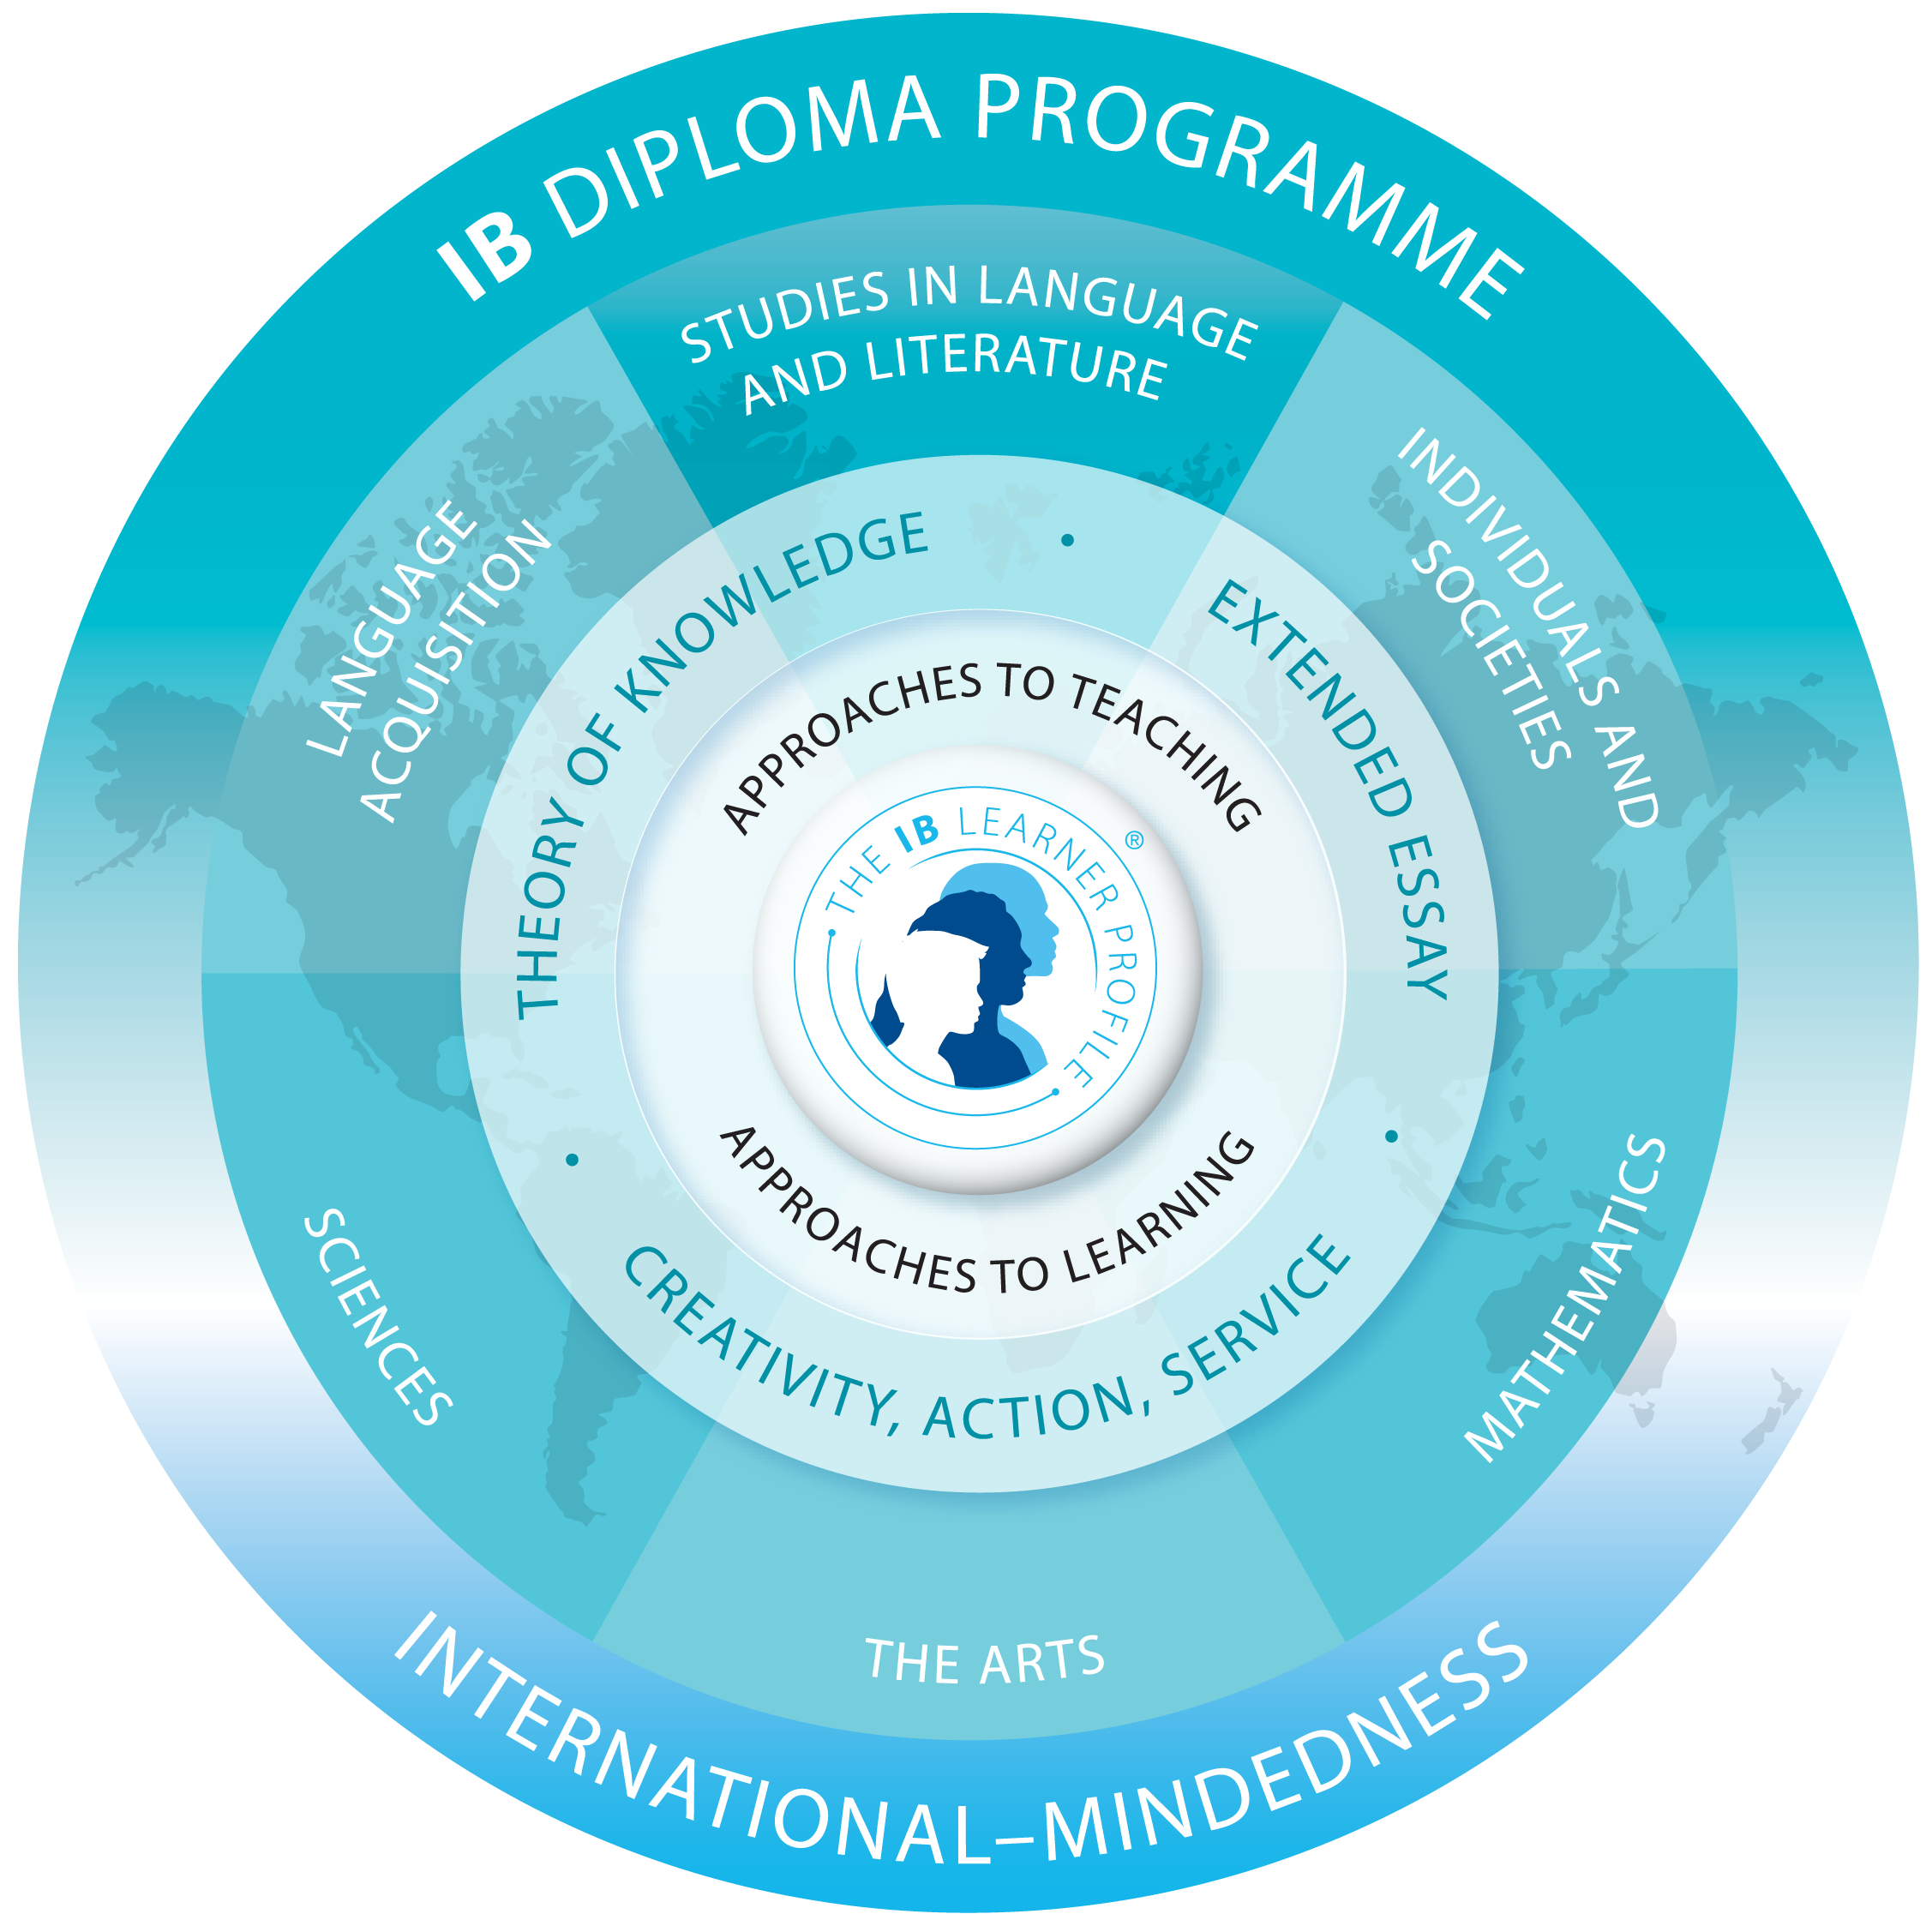 blue circle with Diploma Program